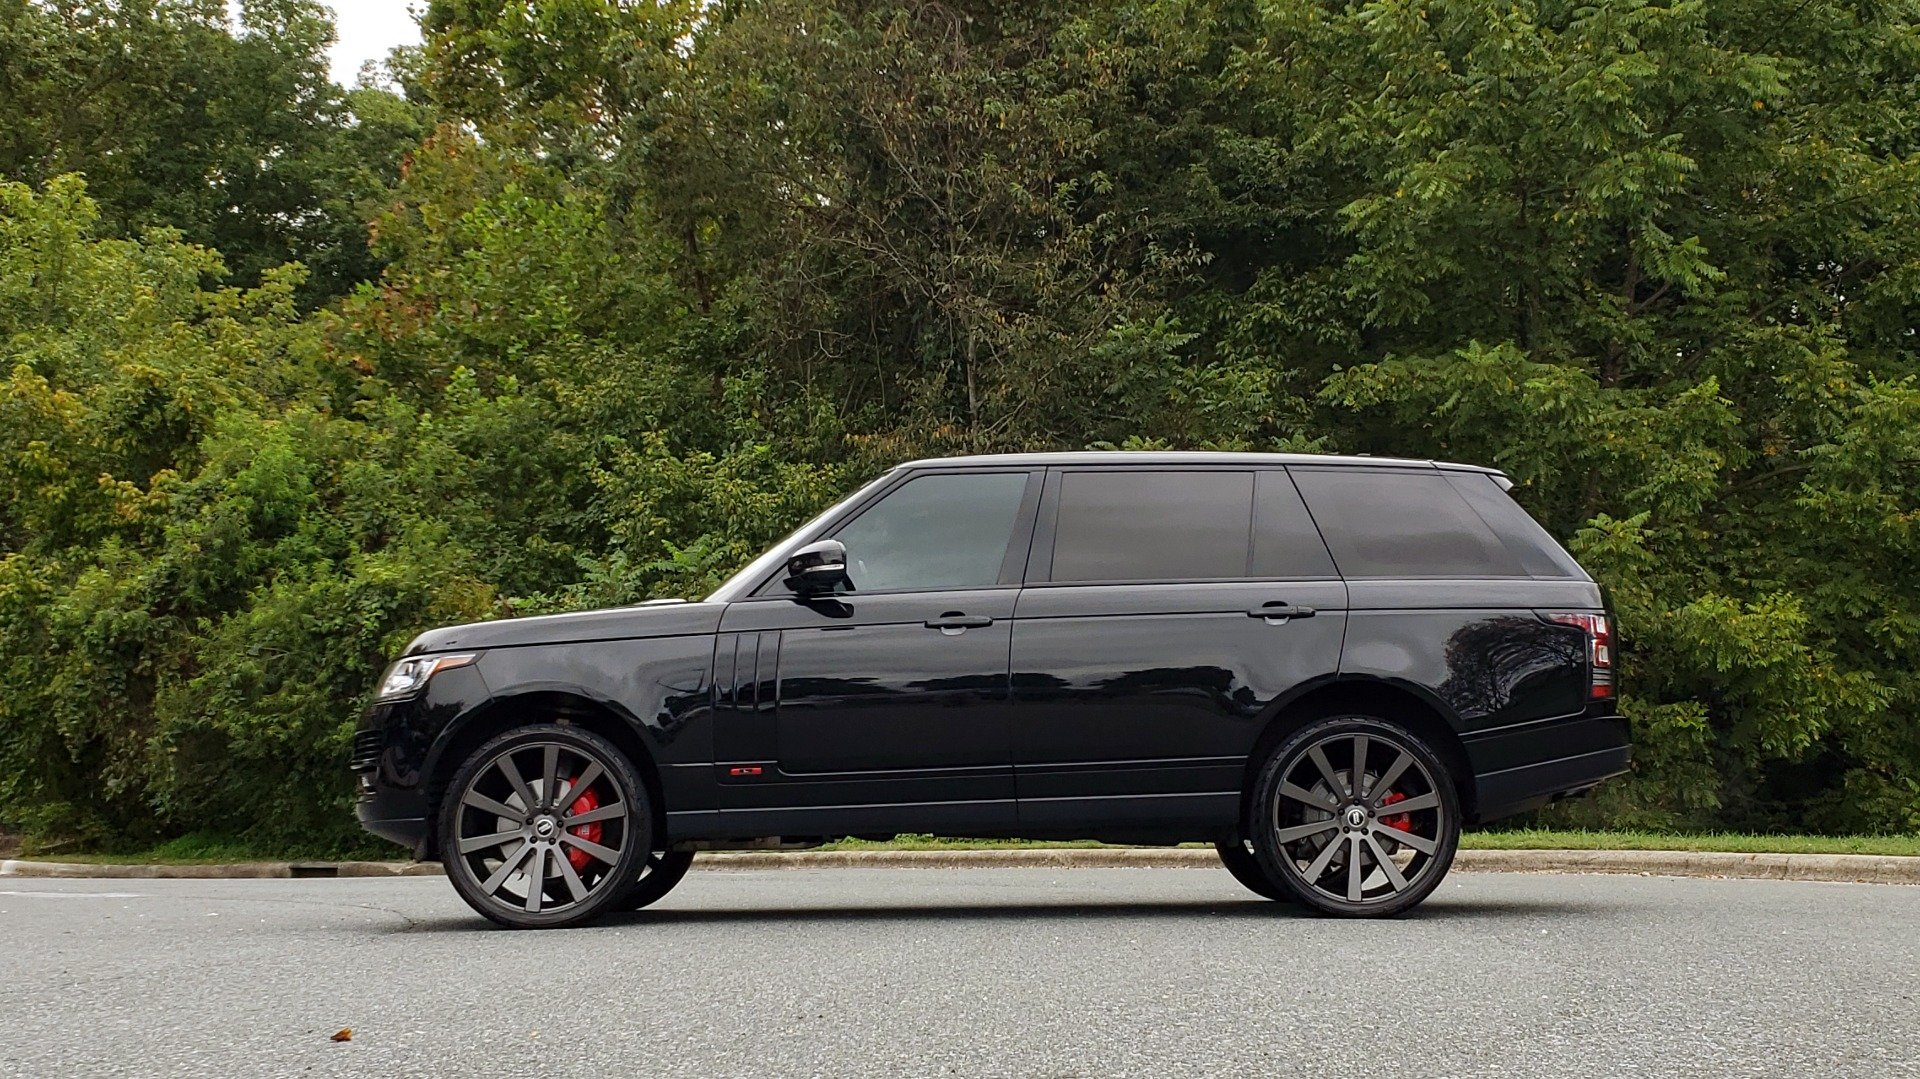 Used 2016 Land Rover RANGE ROVER AUTOBIOGRAPHY / SC-V8 / LWB / PANO-ROOF / NAV / MERIDIAN / ENT / REARVIEW for sale Sold at Formula Imports in Charlotte NC 28227 3